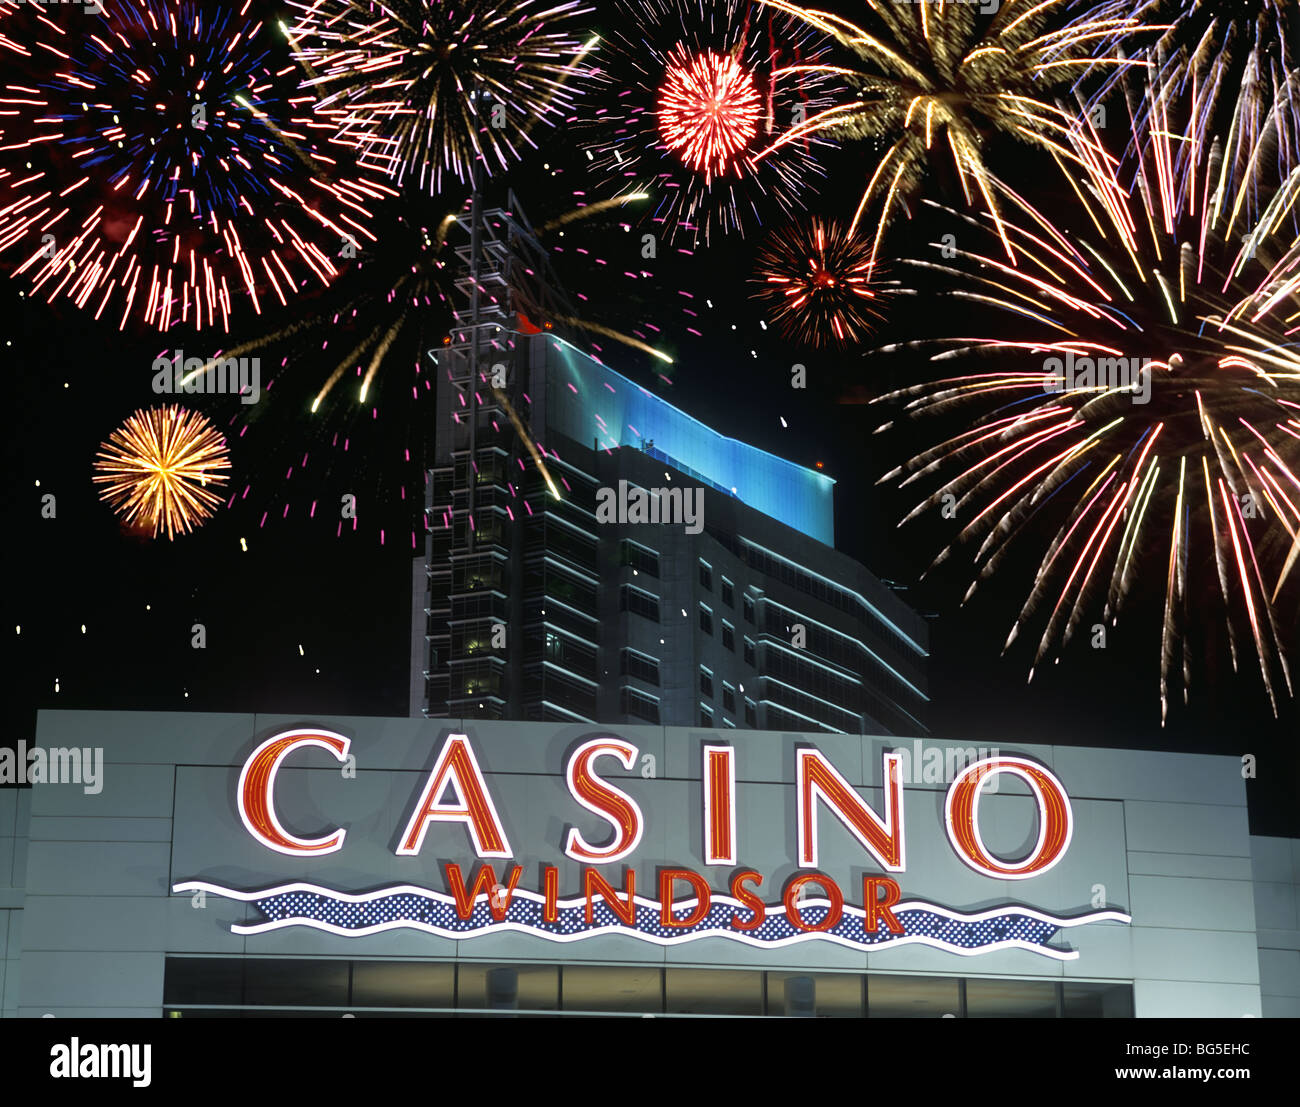 Windsor casino new year bible passages for gambling addictions